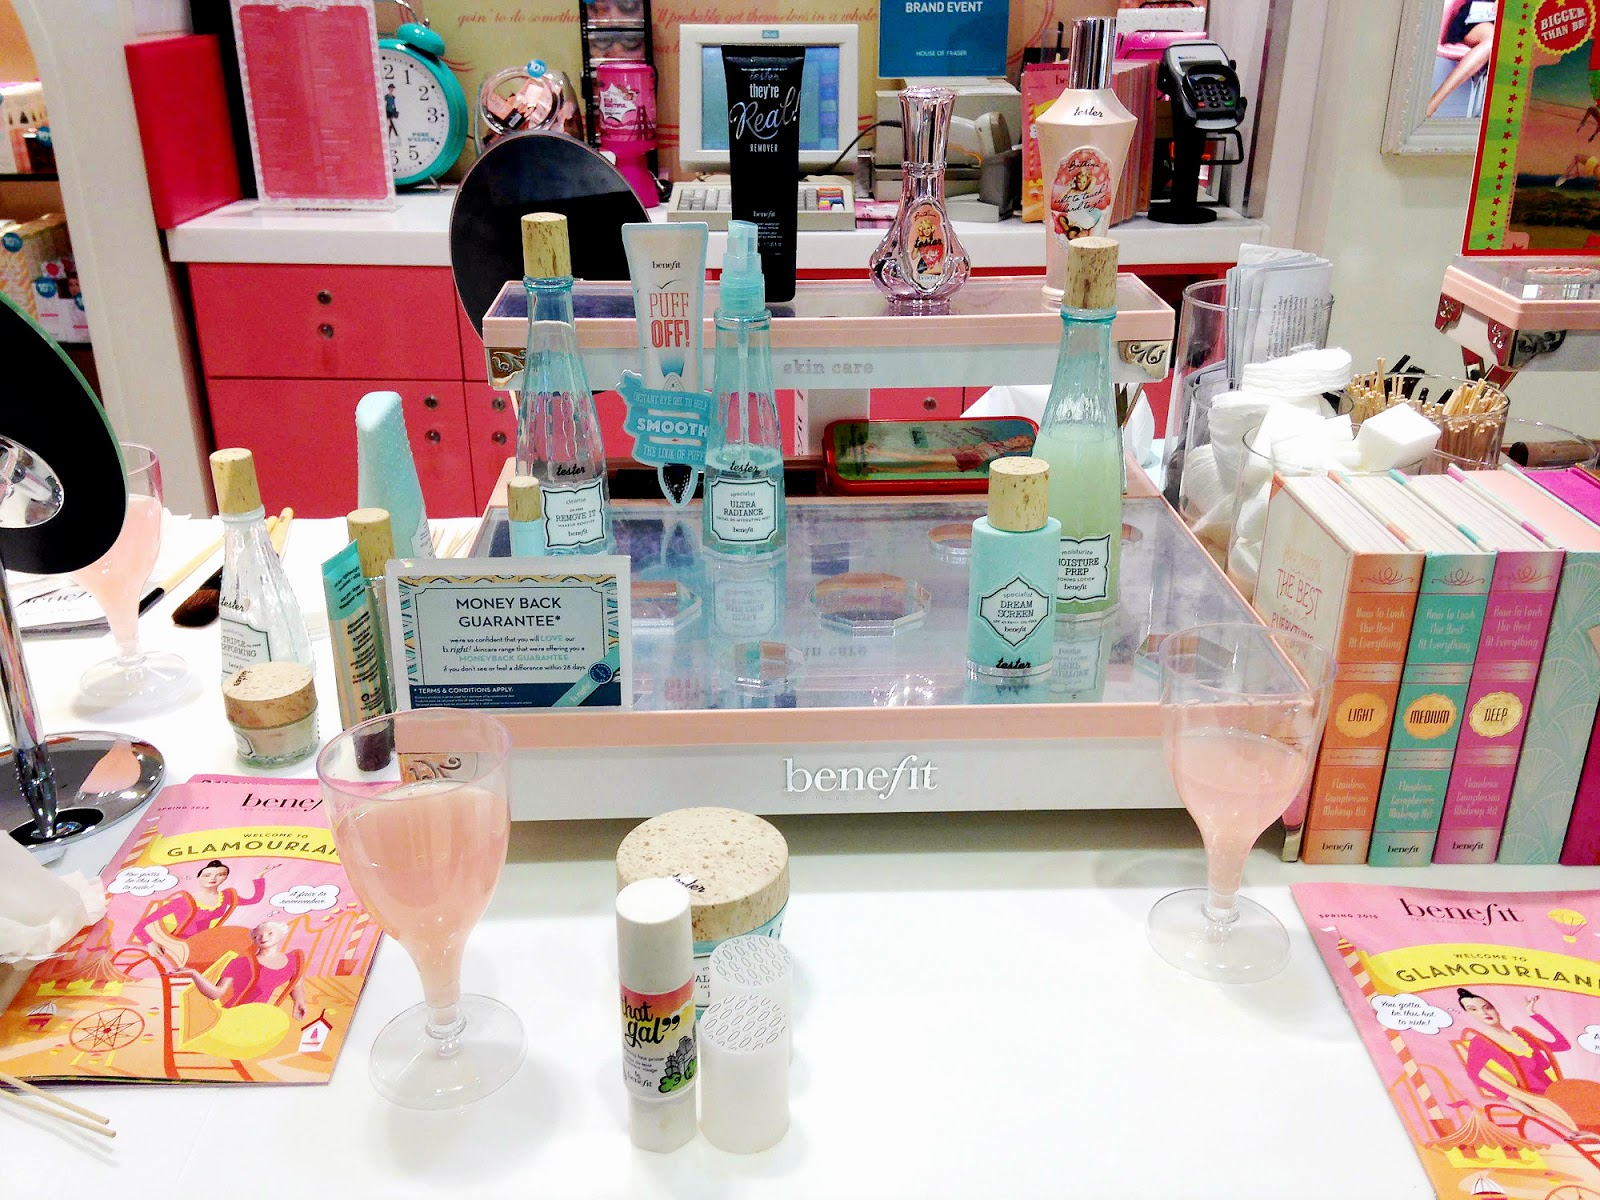 Benefit Bloggers Event